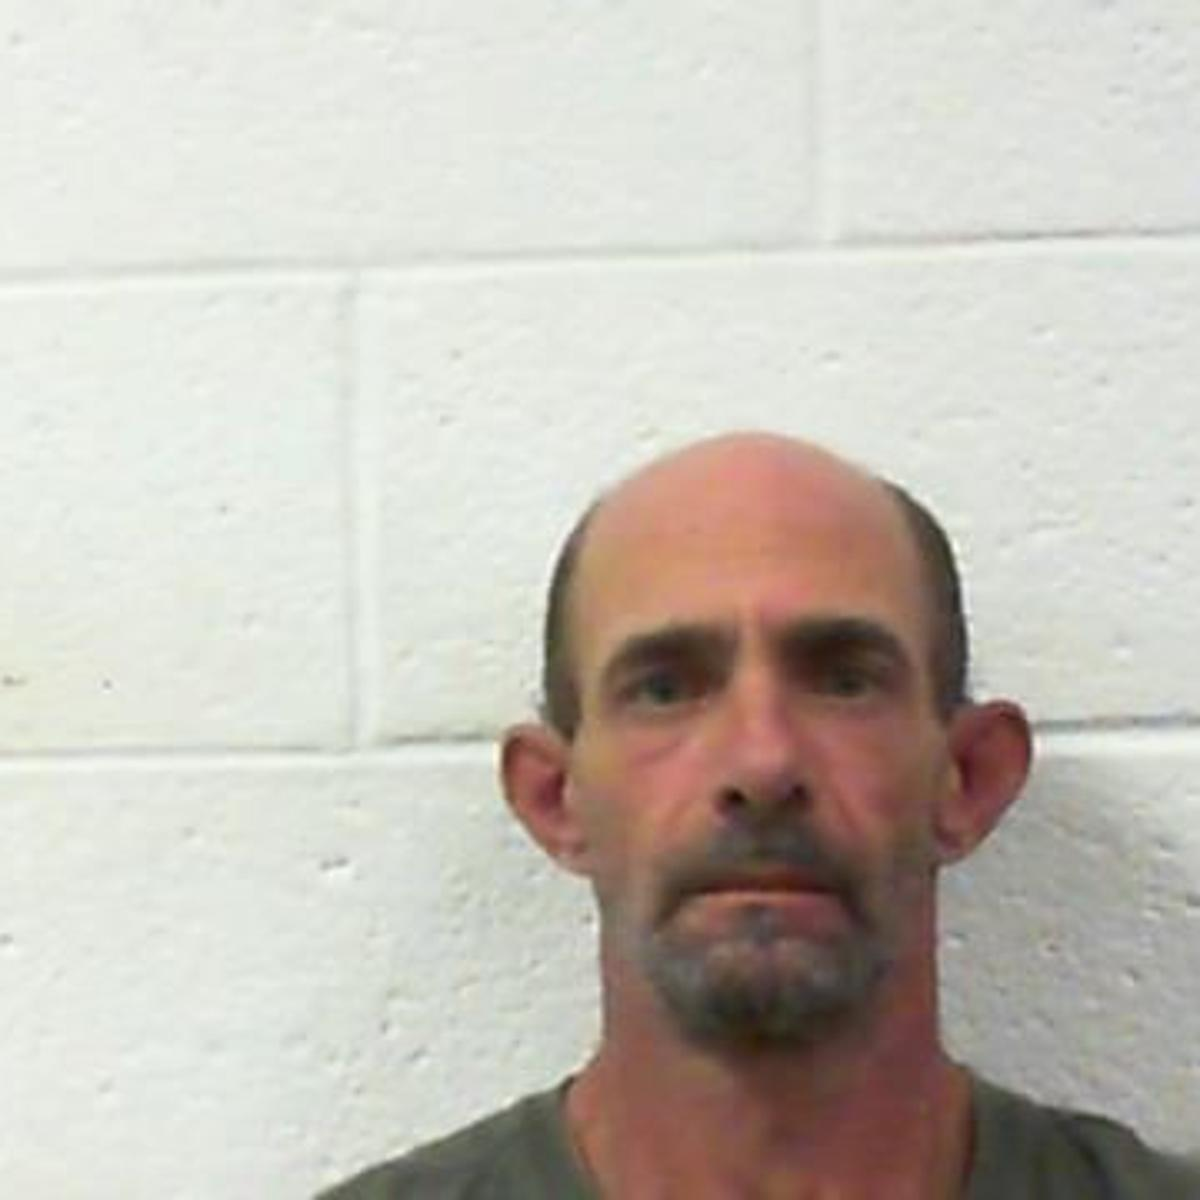 Couple arrested after two-year-old dies from alleged abuse | WV News